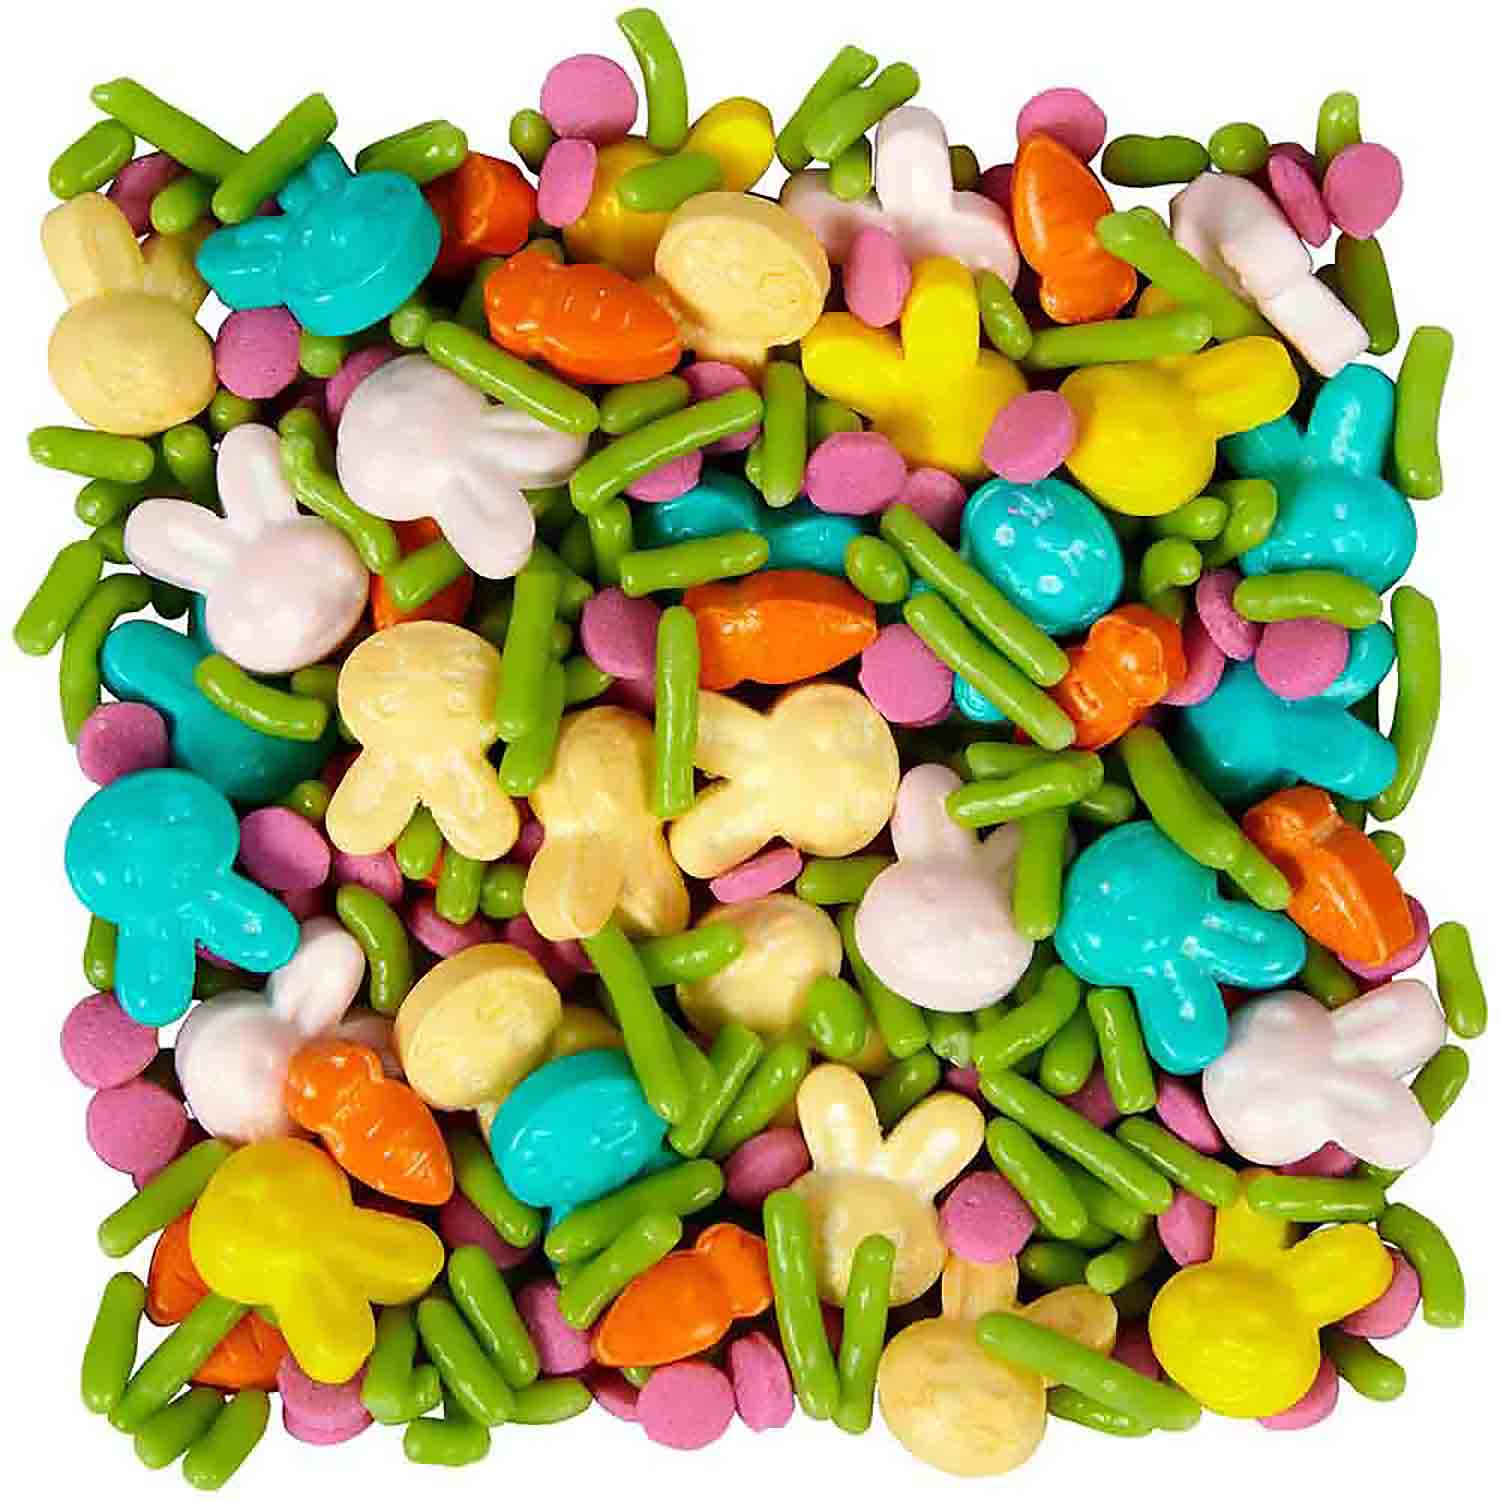 Spring Sprinkles Bunny Carrot Mix